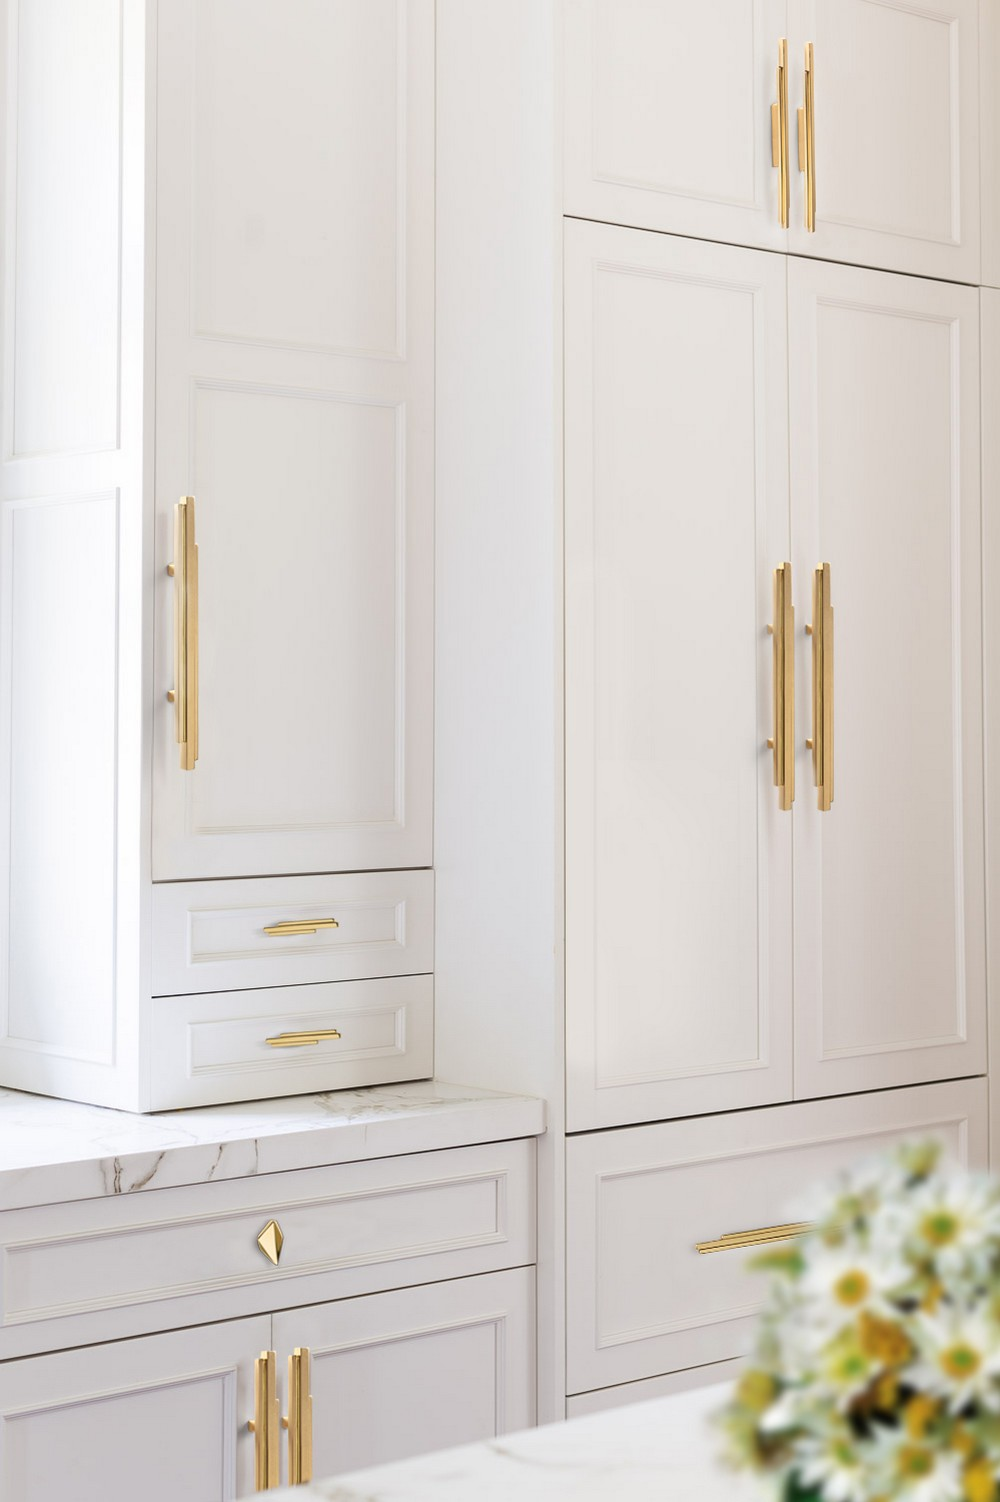 5 Timeless Design Finishes Perfect for Cabinet Hardware 4 cabinet hardware 5 Timeless Design Finishes Perfect for Cabinet Hardware 5 Timeless Design Finishes Perfect for Cabinet Hardware 4